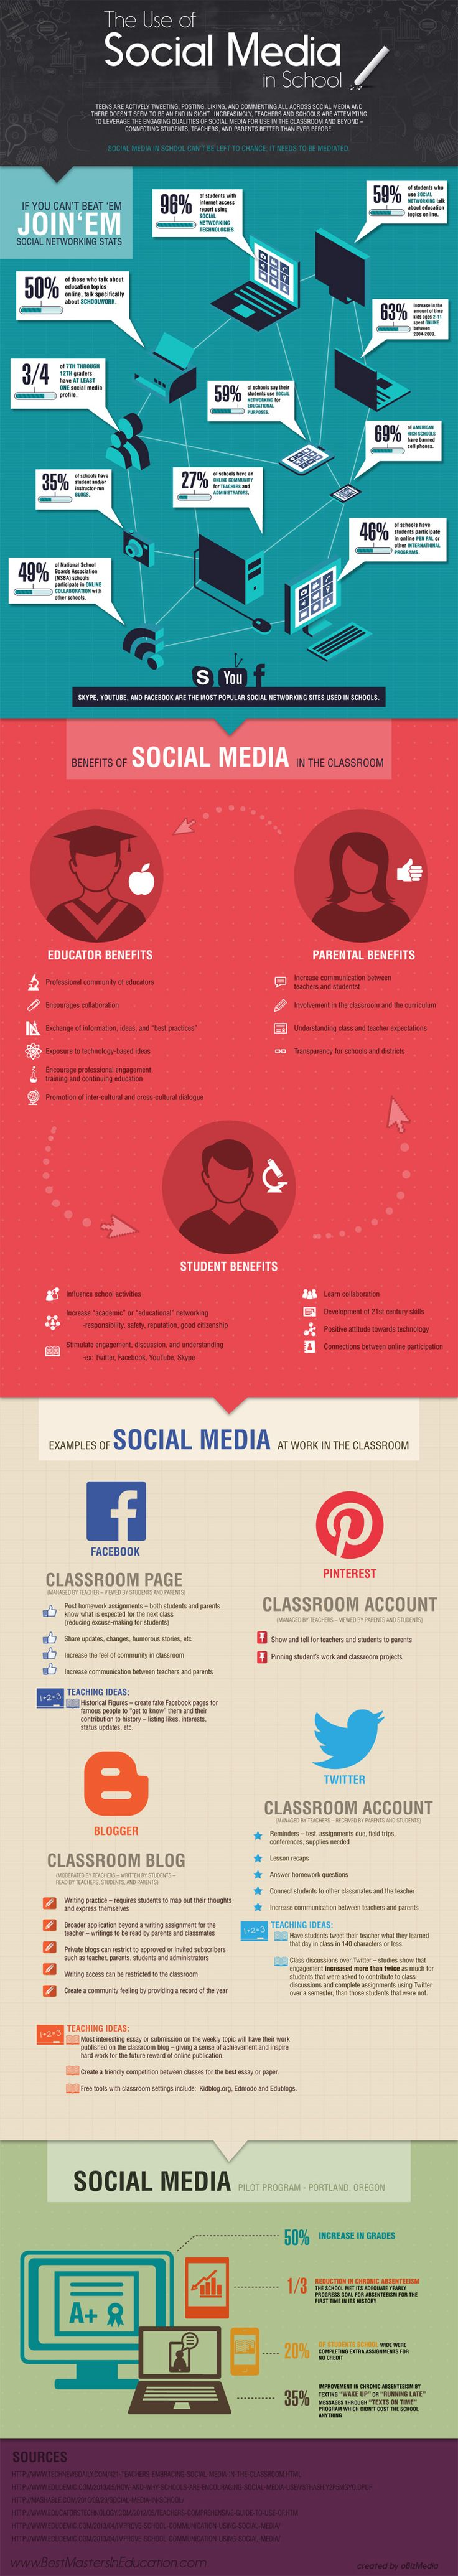 The Use of Social Media in Schools an infographic